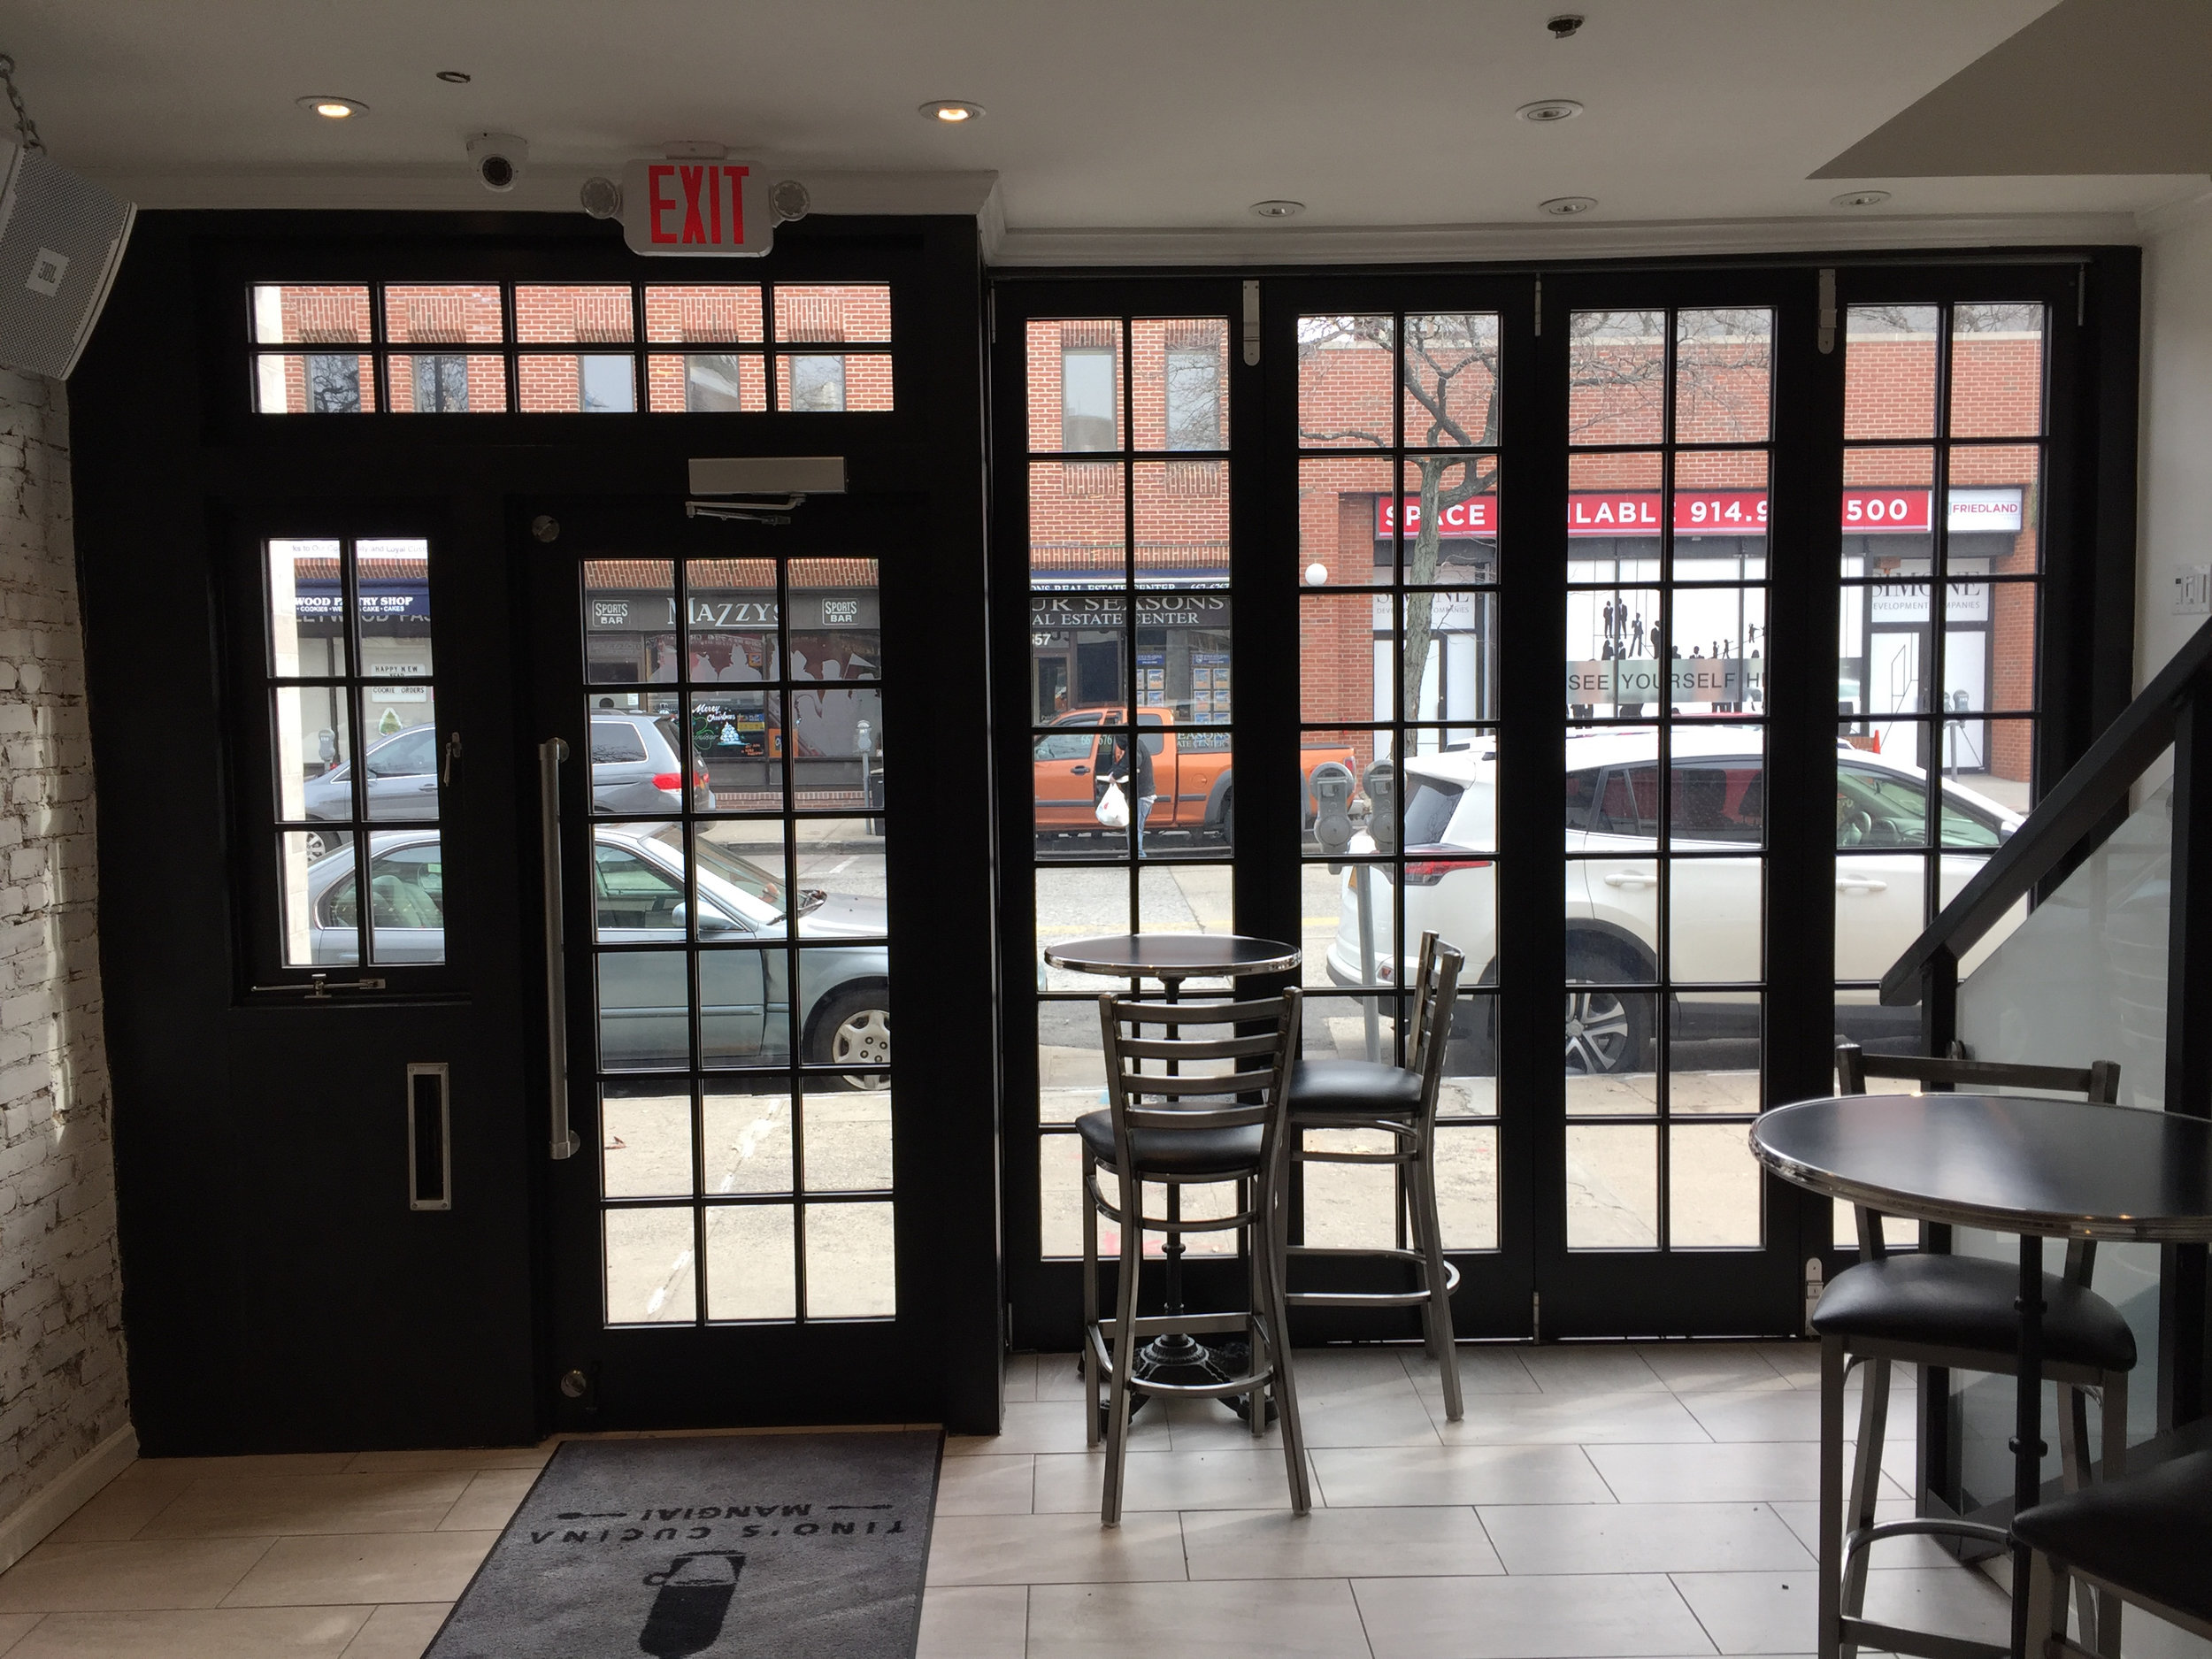 Right Path Windows & Restoration custom storefront facade as seen from the interior